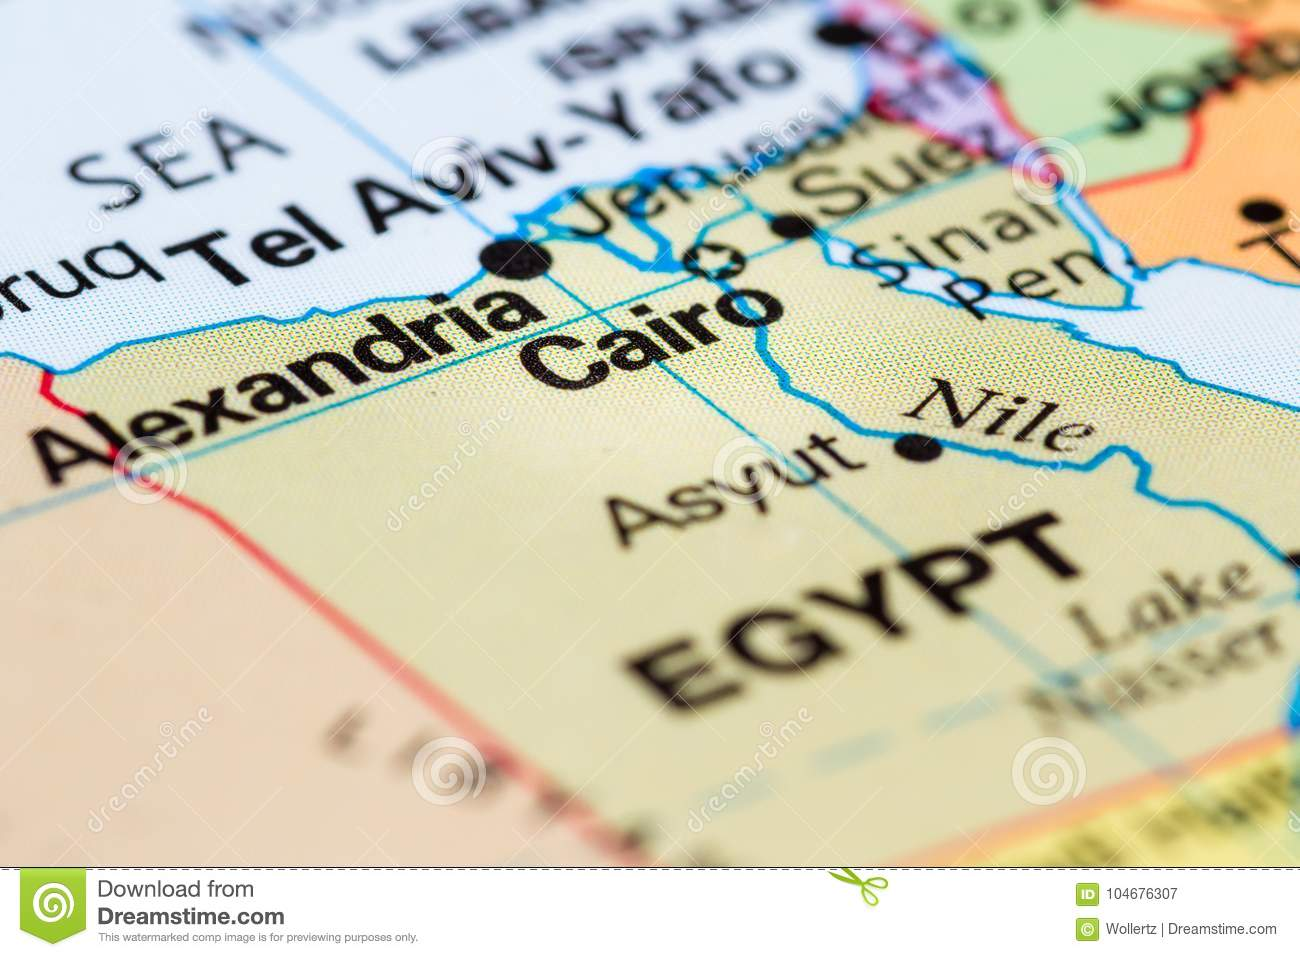 Cairo, Egypt on a map stock image. Image of city, name - 104676307